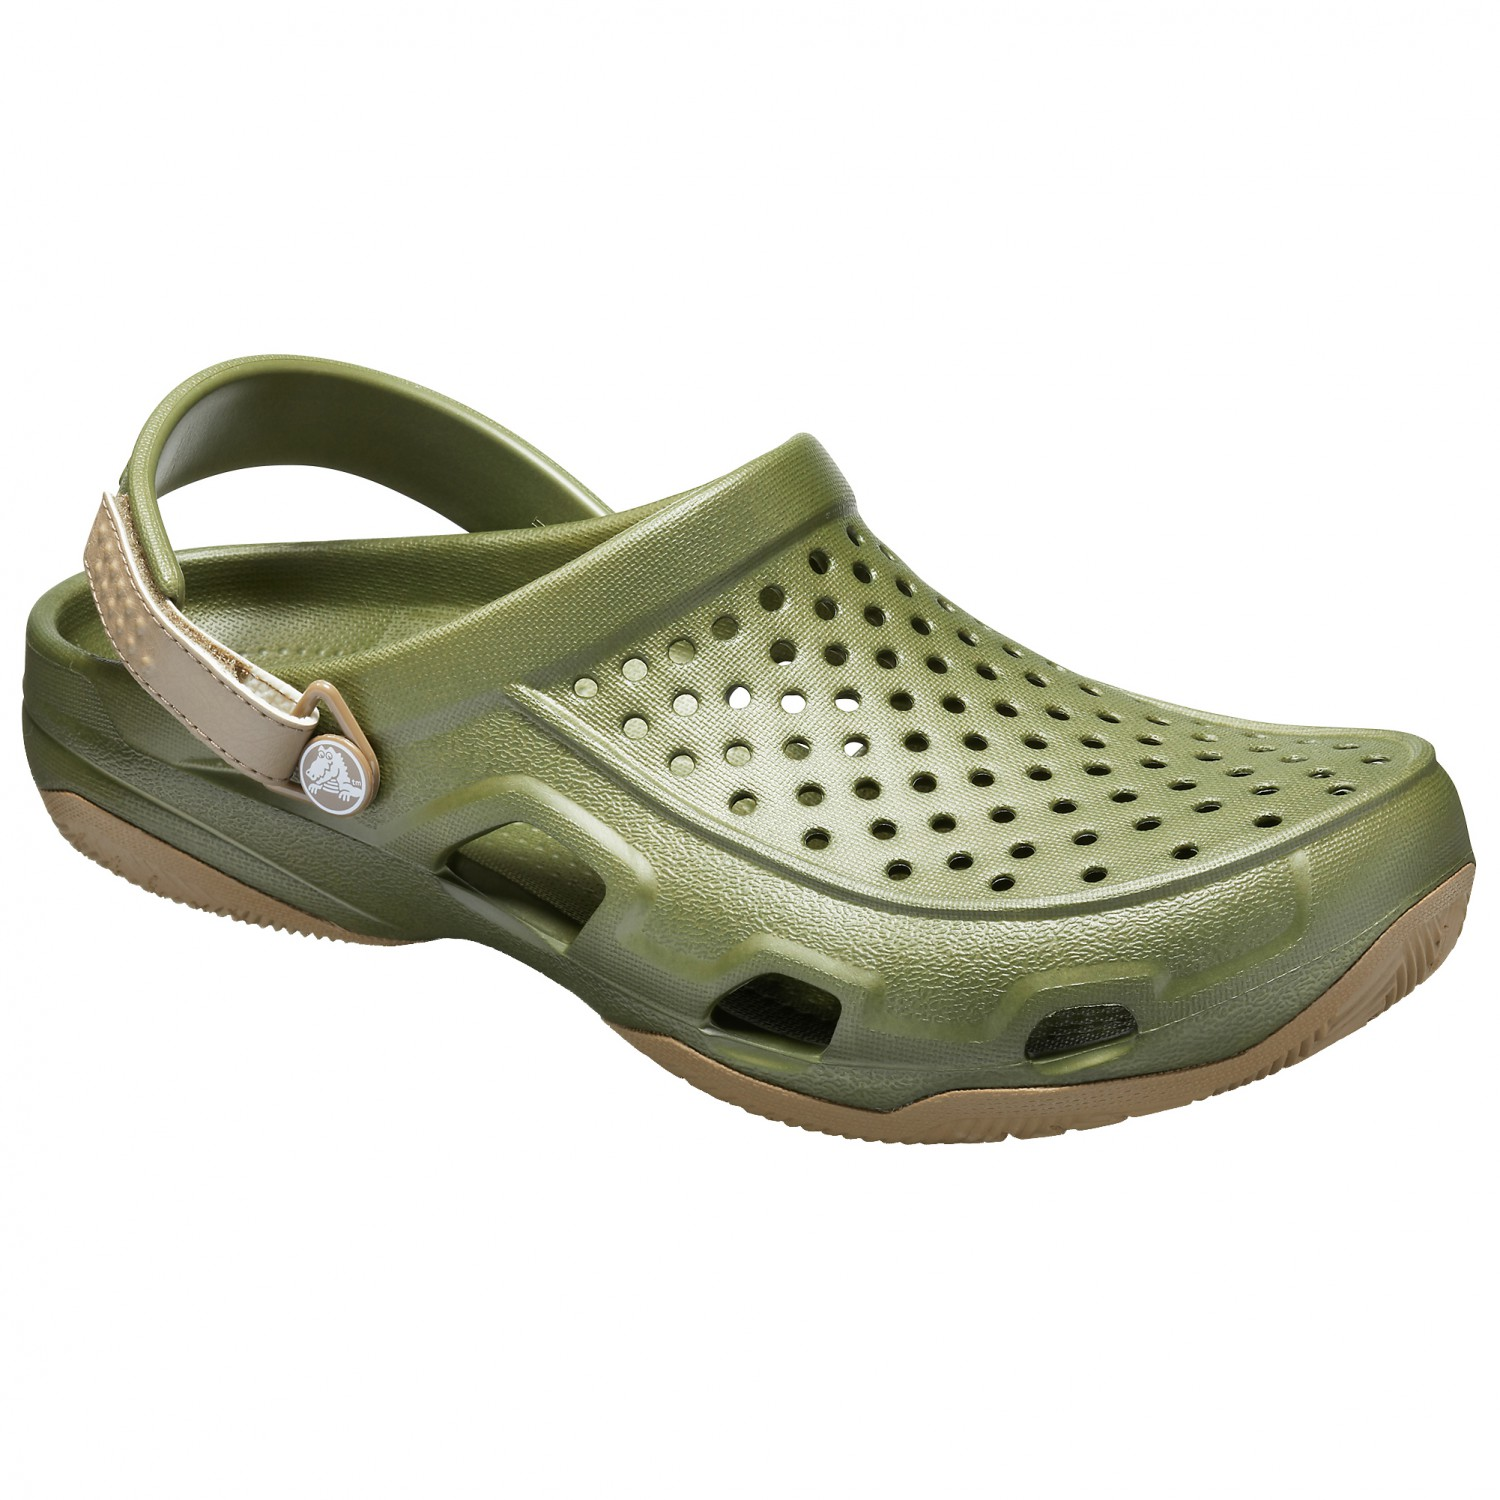 best loved e18c3 52593 Crocs - Swiftwater Deck Clog - Sandalen - Black / Light Grey | M10 (US)